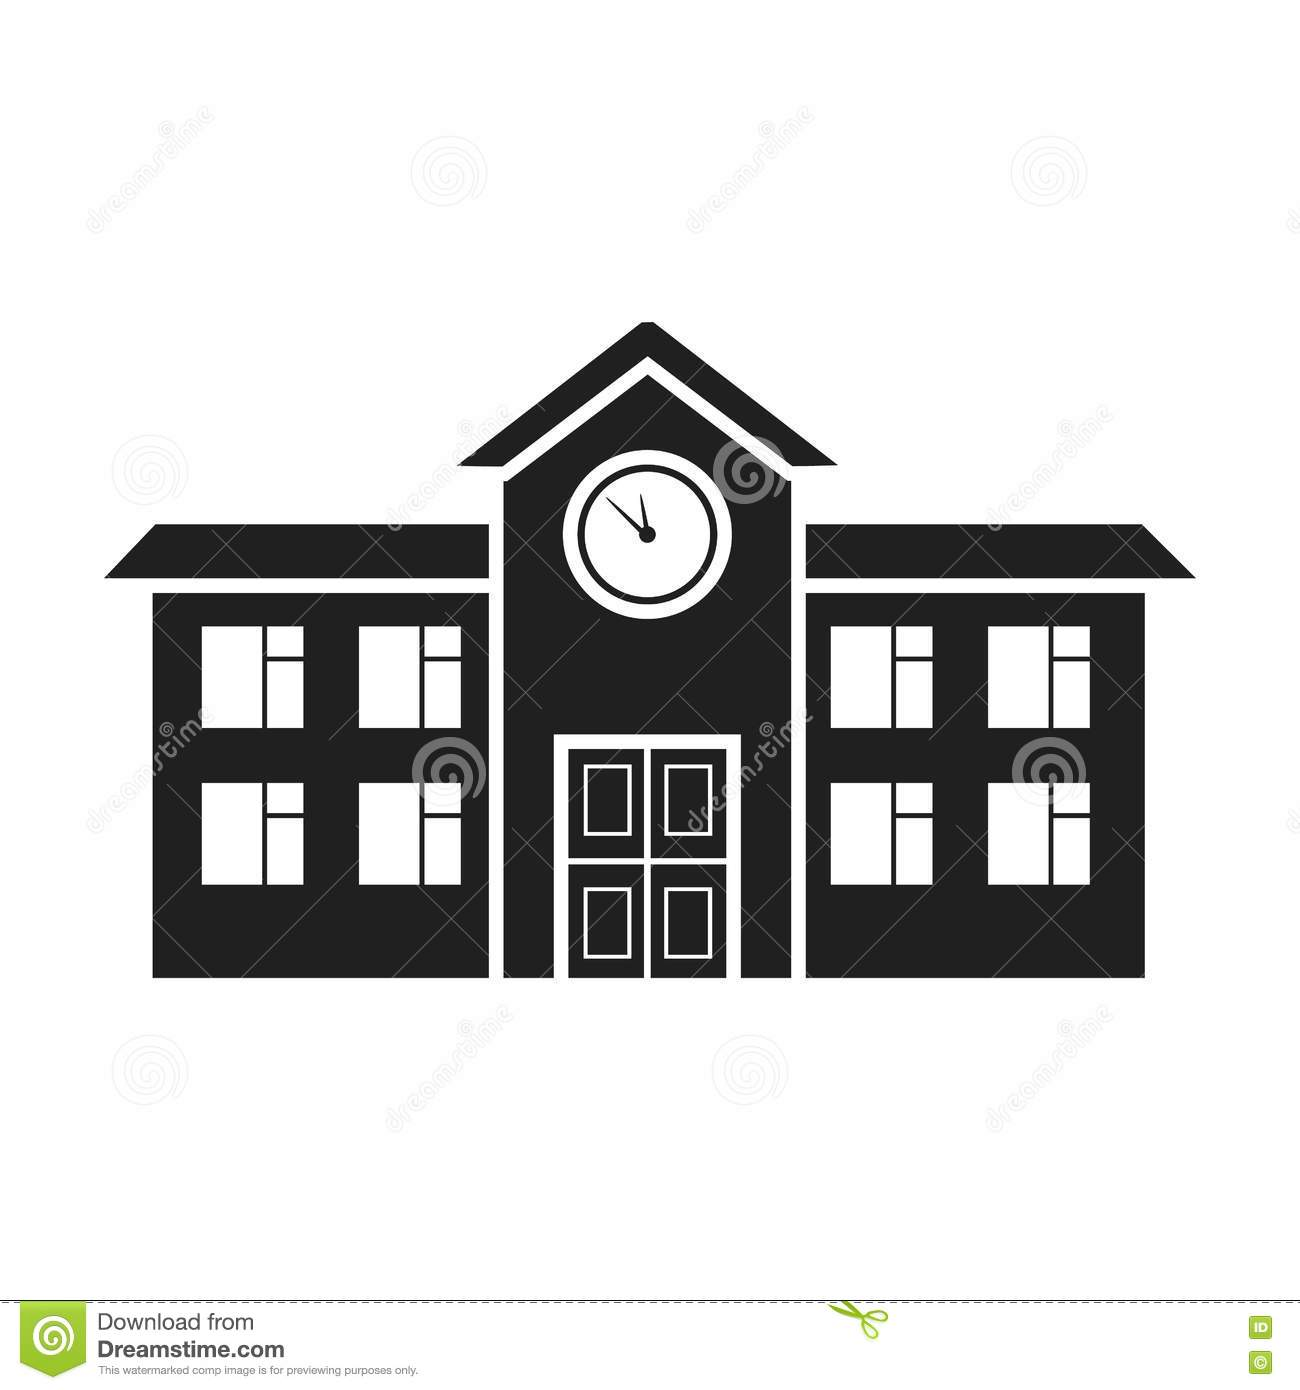 School icon in black style on white background building symbol school icon in black style on white background building symbol stock vector illustration biocorpaavc